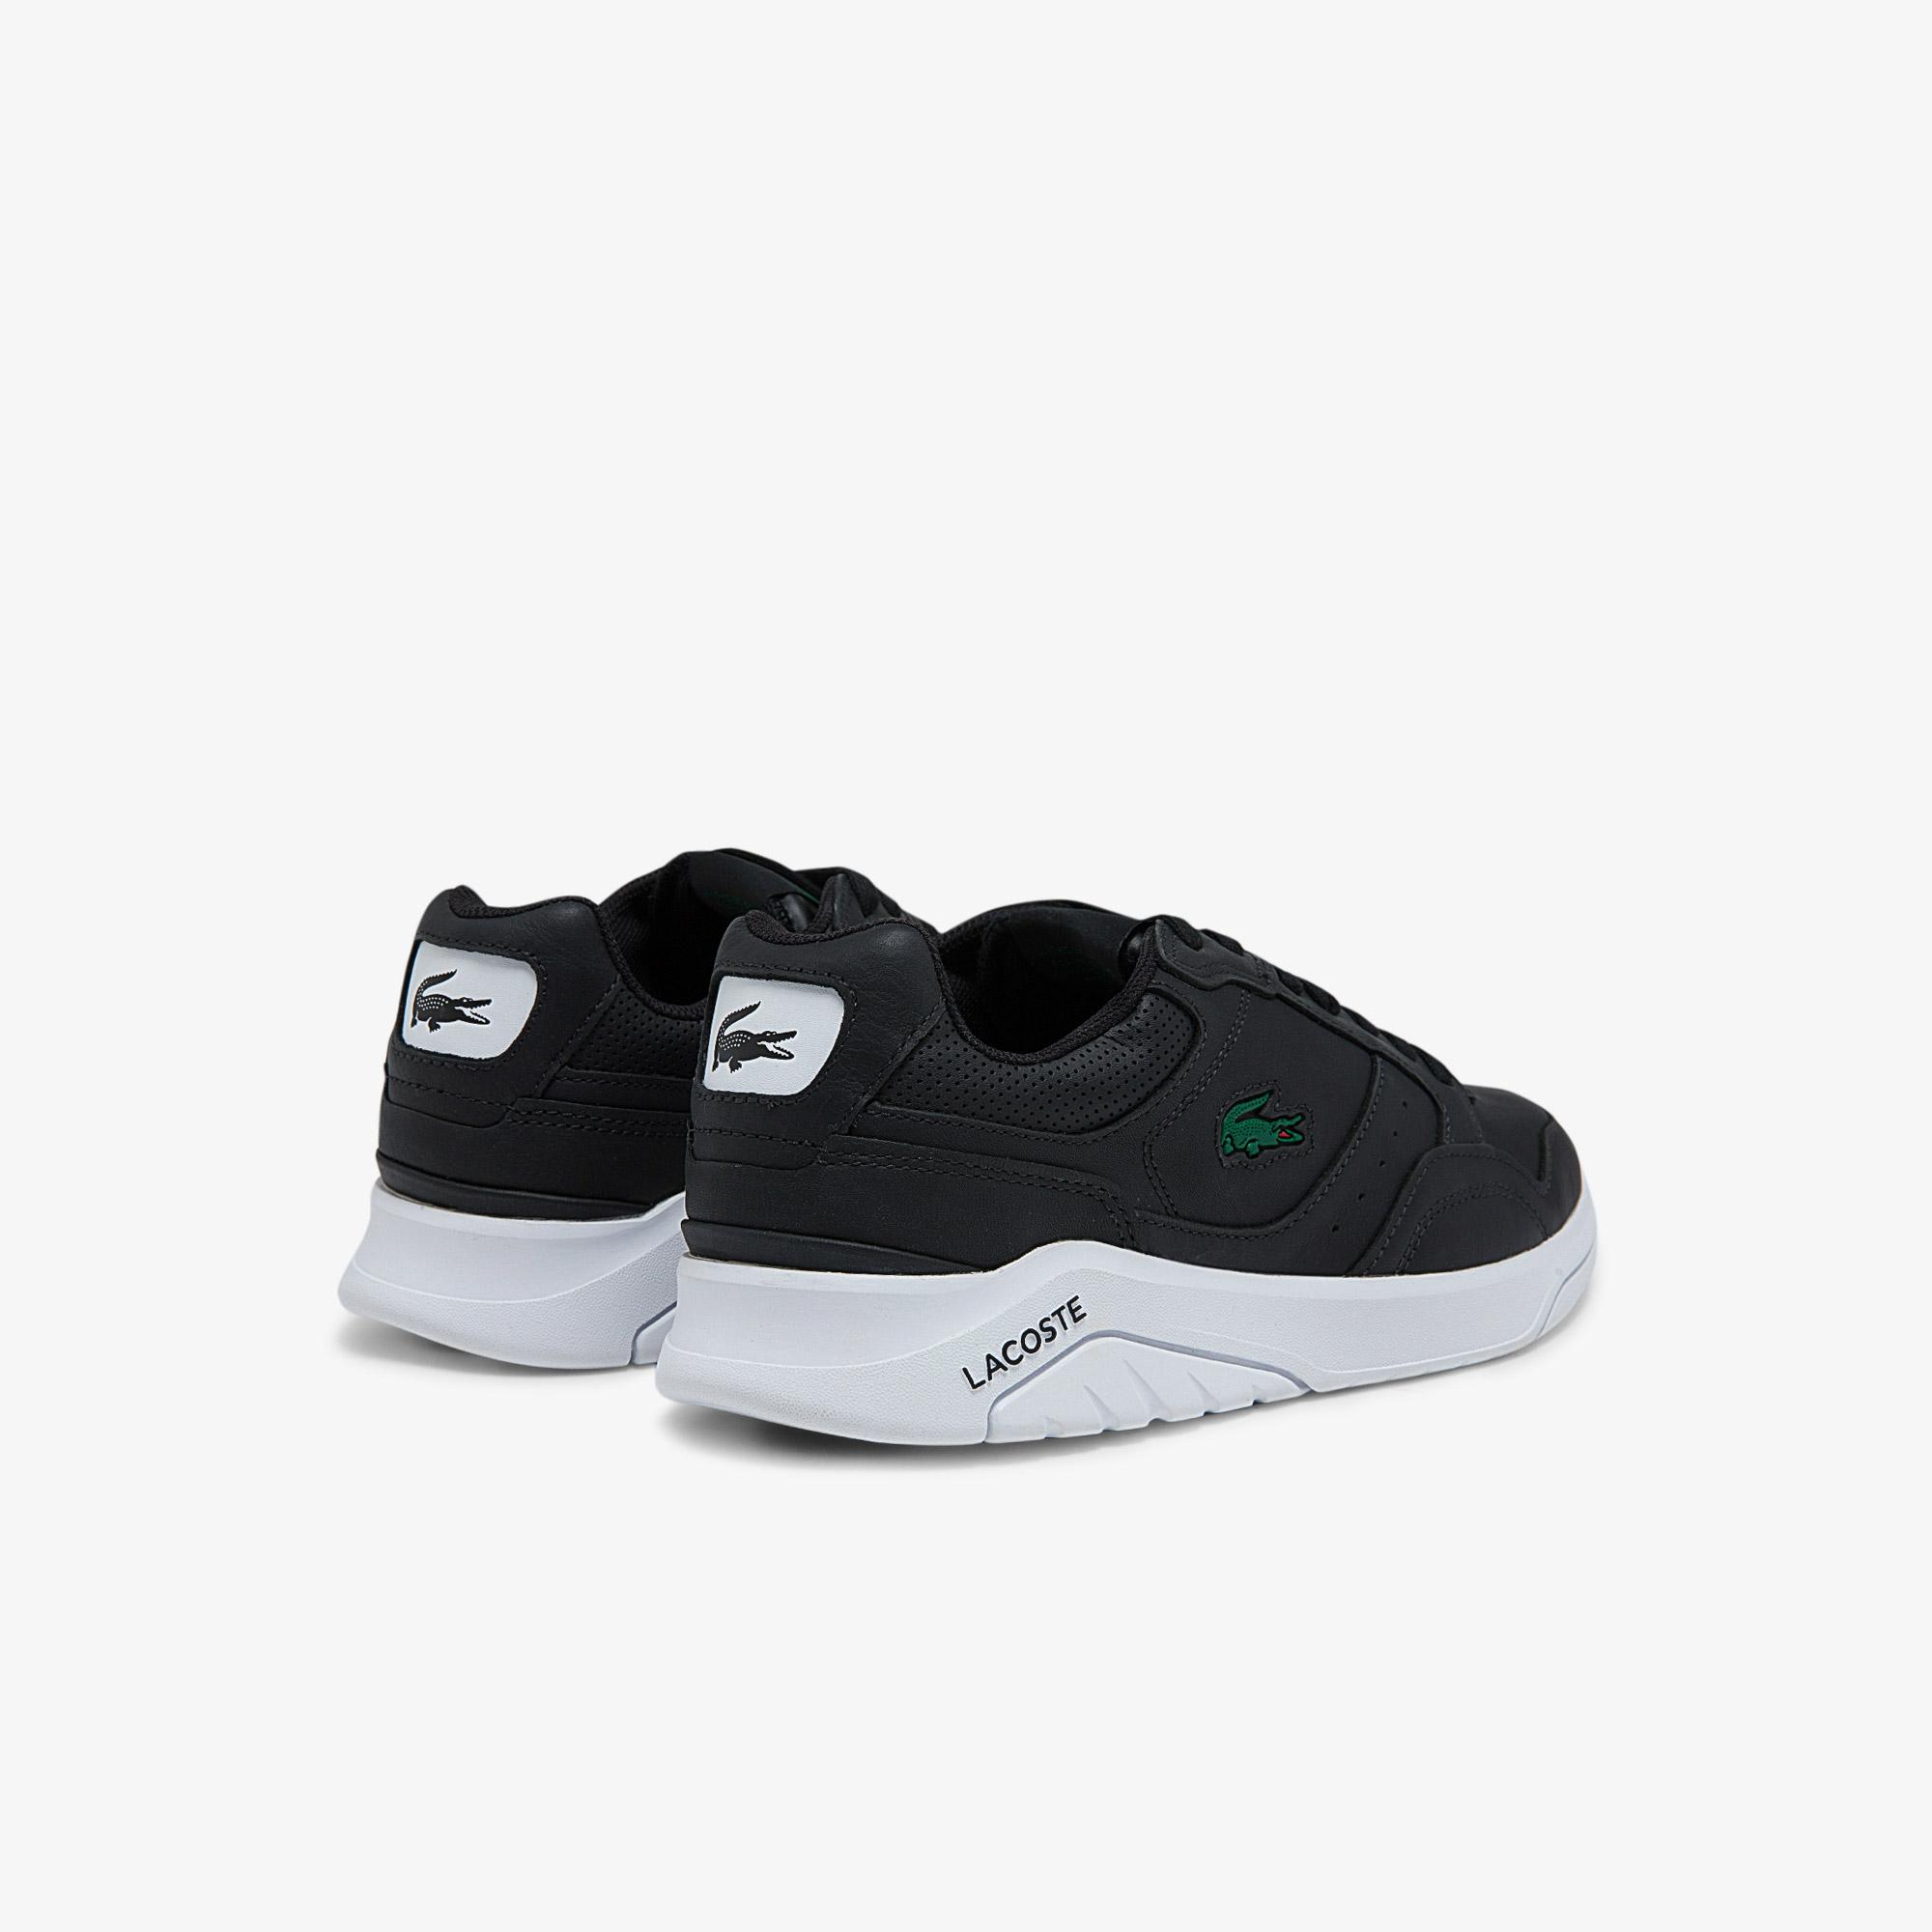 Lacoste Men's GAME ADVANCE LUXE Sneakers